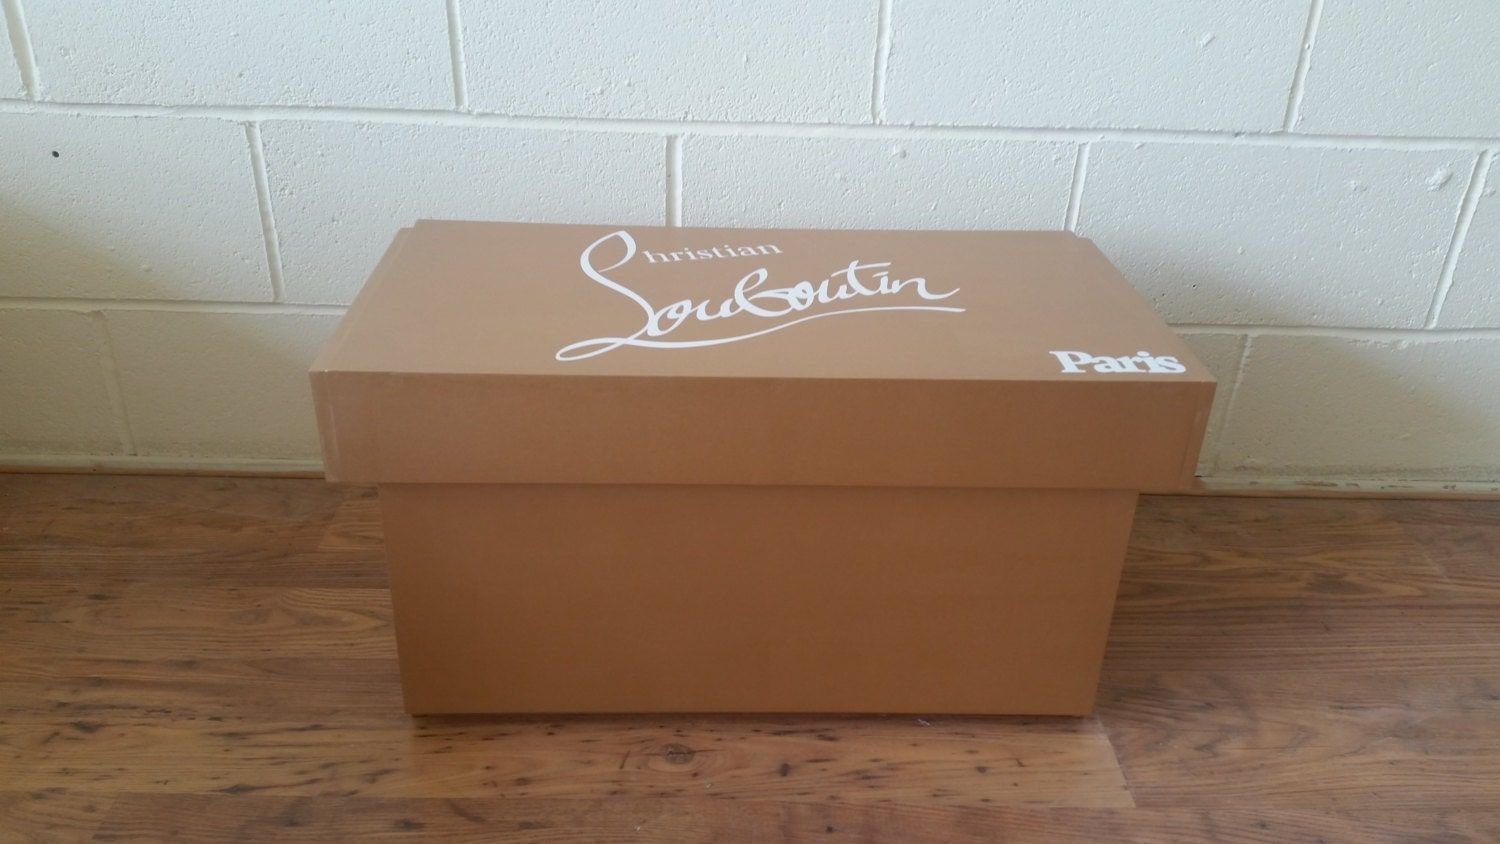 XL Shoe Storage Box Christain Louboutin Giant Shoe Box with lining (fits 68no pairs of shoes)